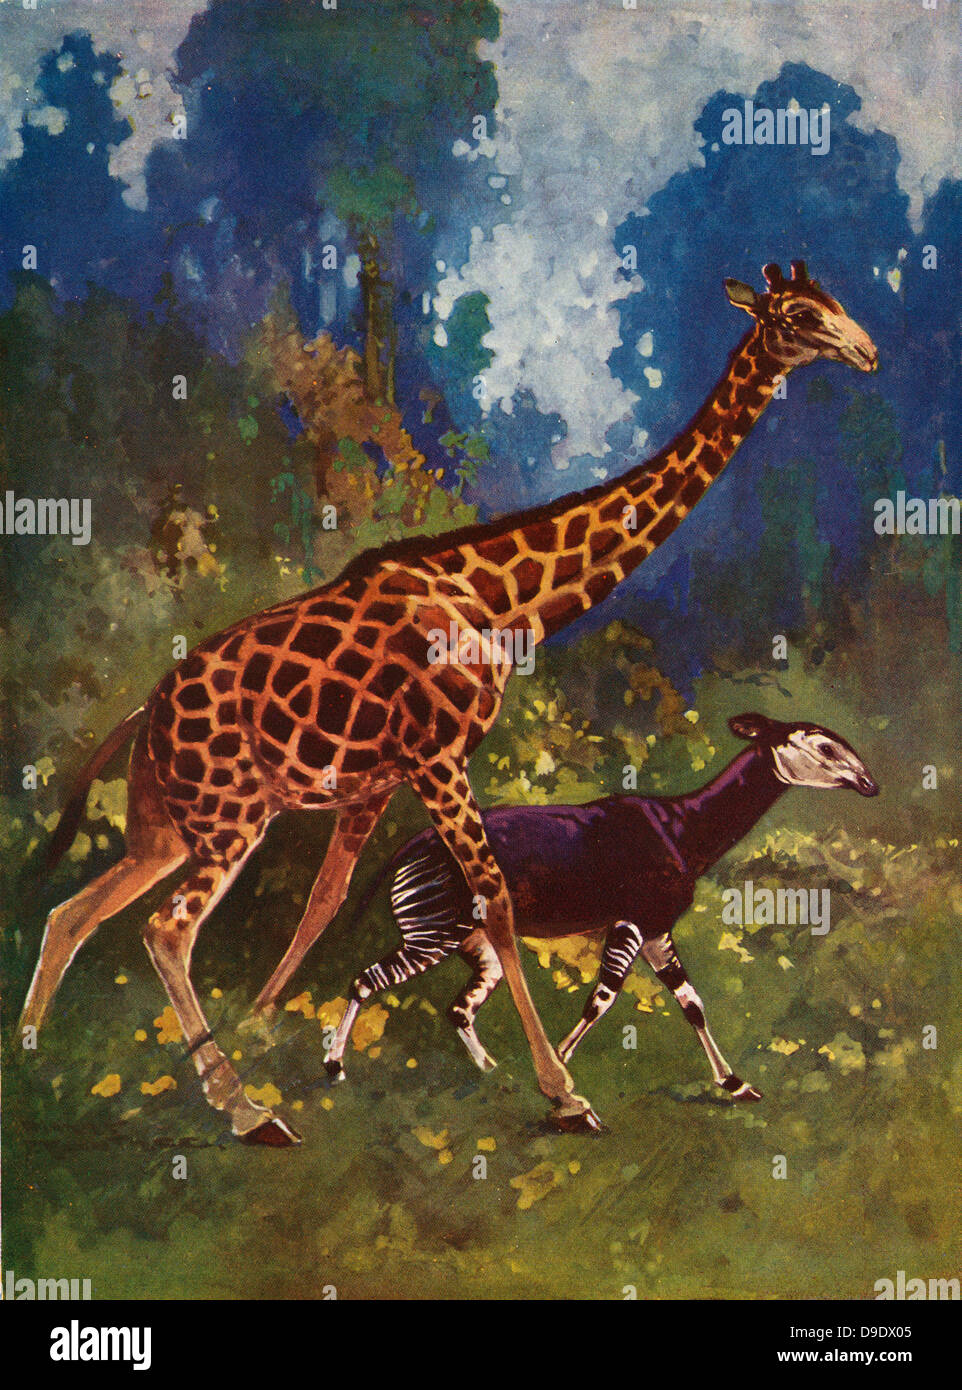 Illustration of Giraffe and its relative Okapi johnstoni, unknown to science until 1900. - Stock Image